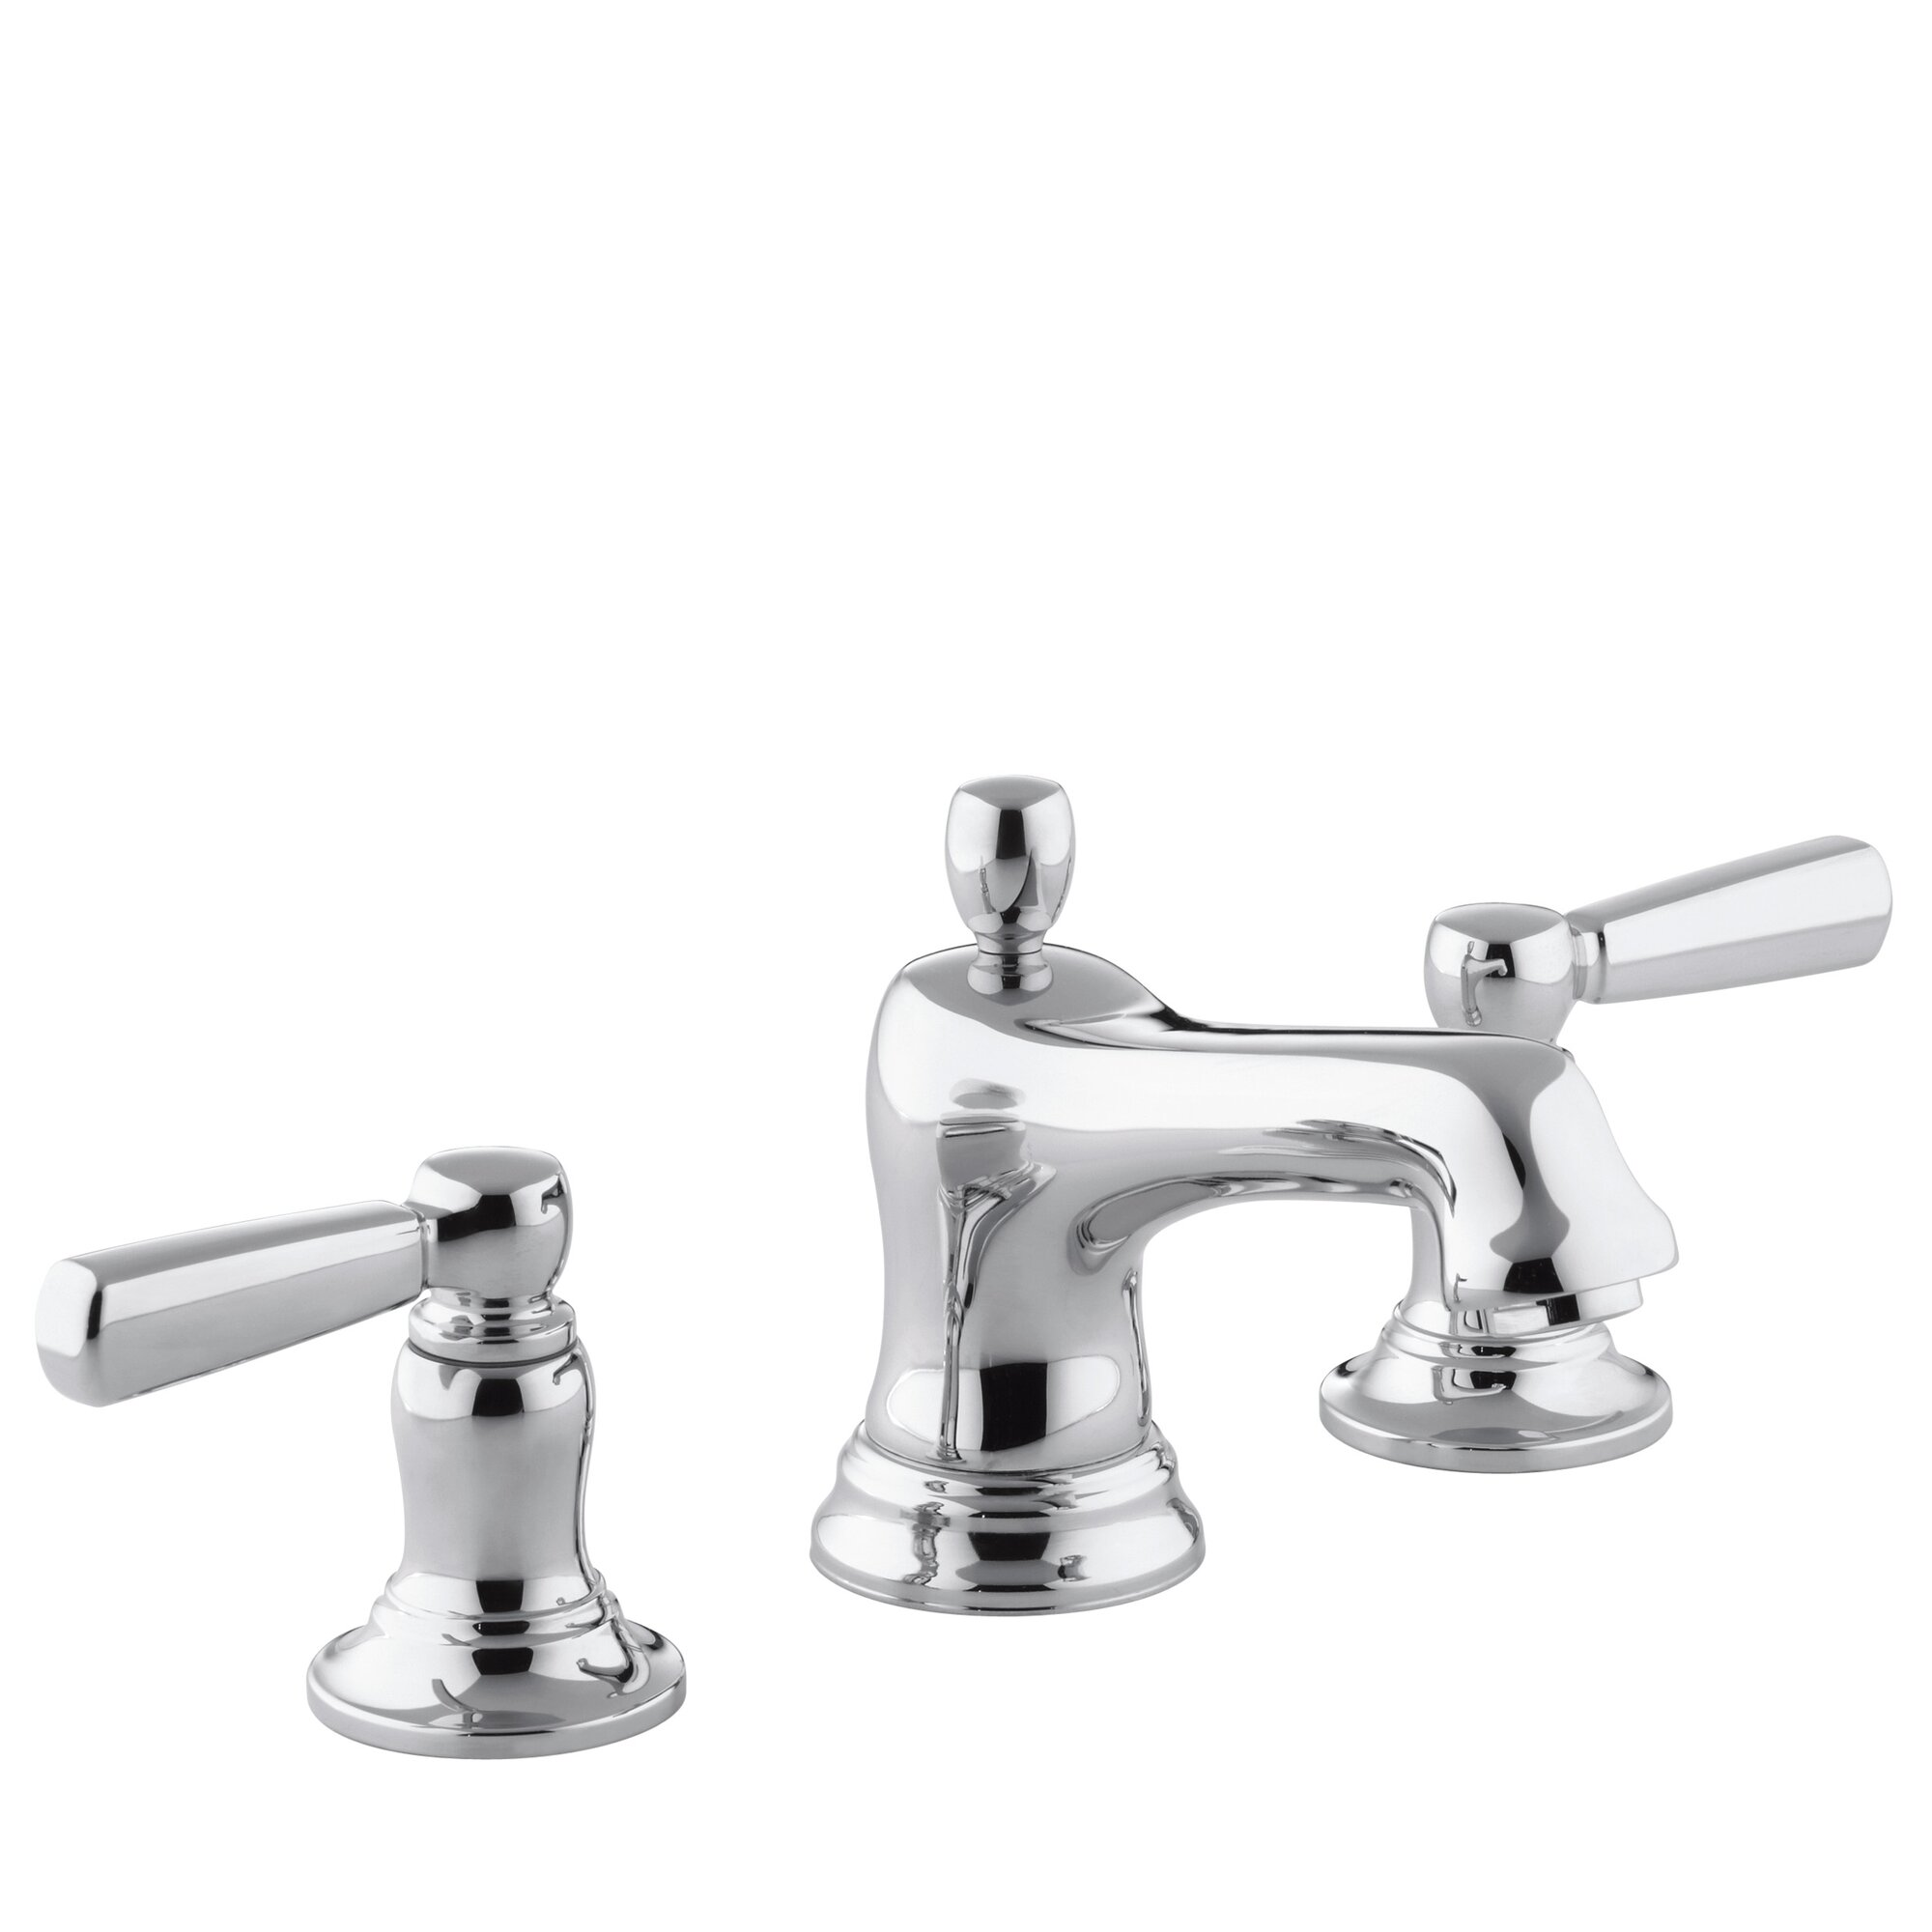 Bancroft Widespread Bathroom Sink Faucet With Metal Lever Handles